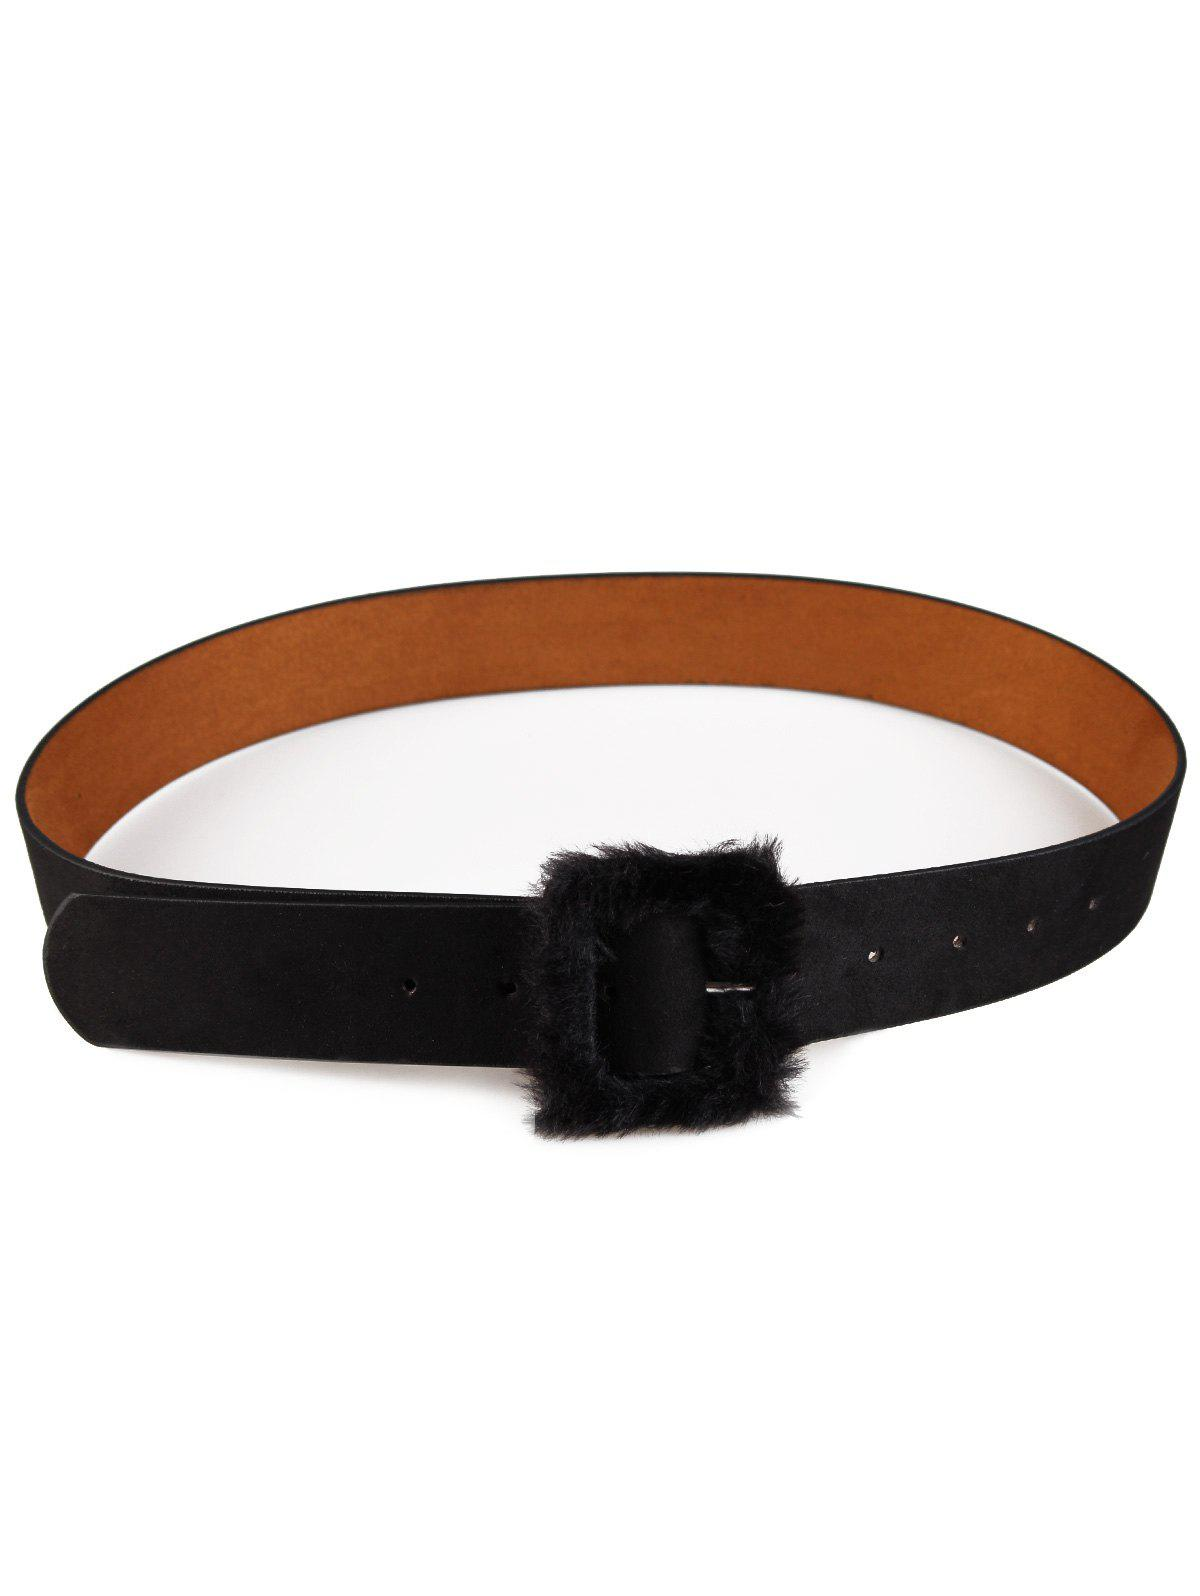 Cute Furry Buckle Decorated Faux Leather Waist Belt - BLACK